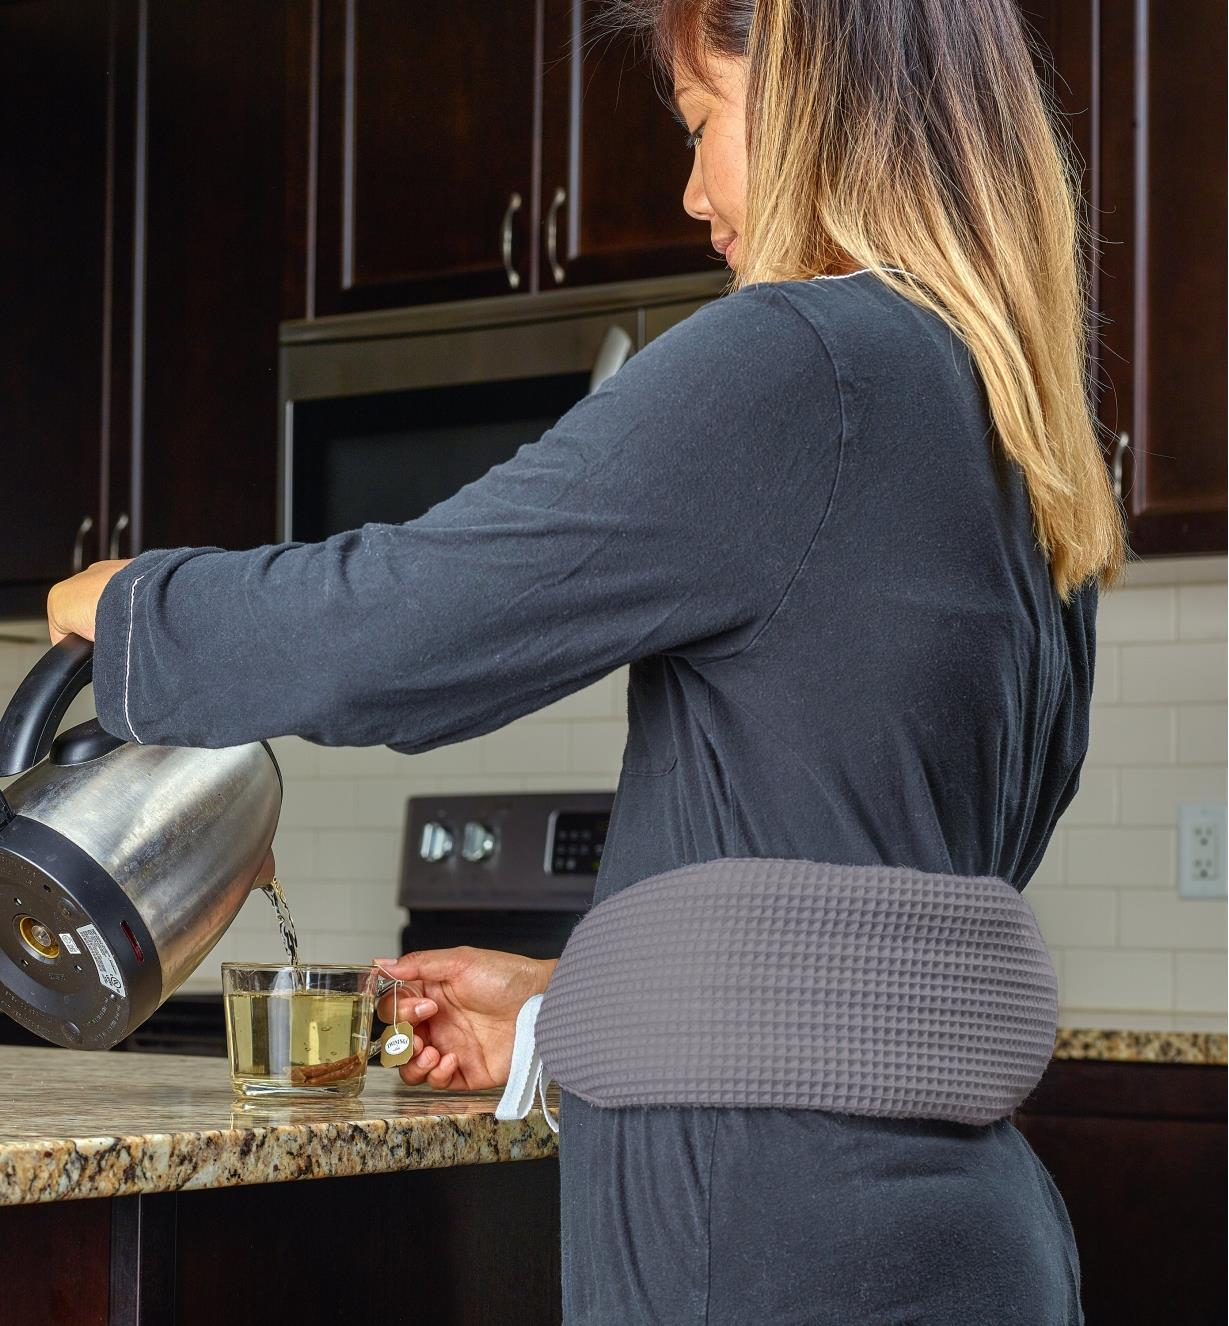 A woman wears the long hot-water bottle tied around her waist while standing in the kitchen making tea